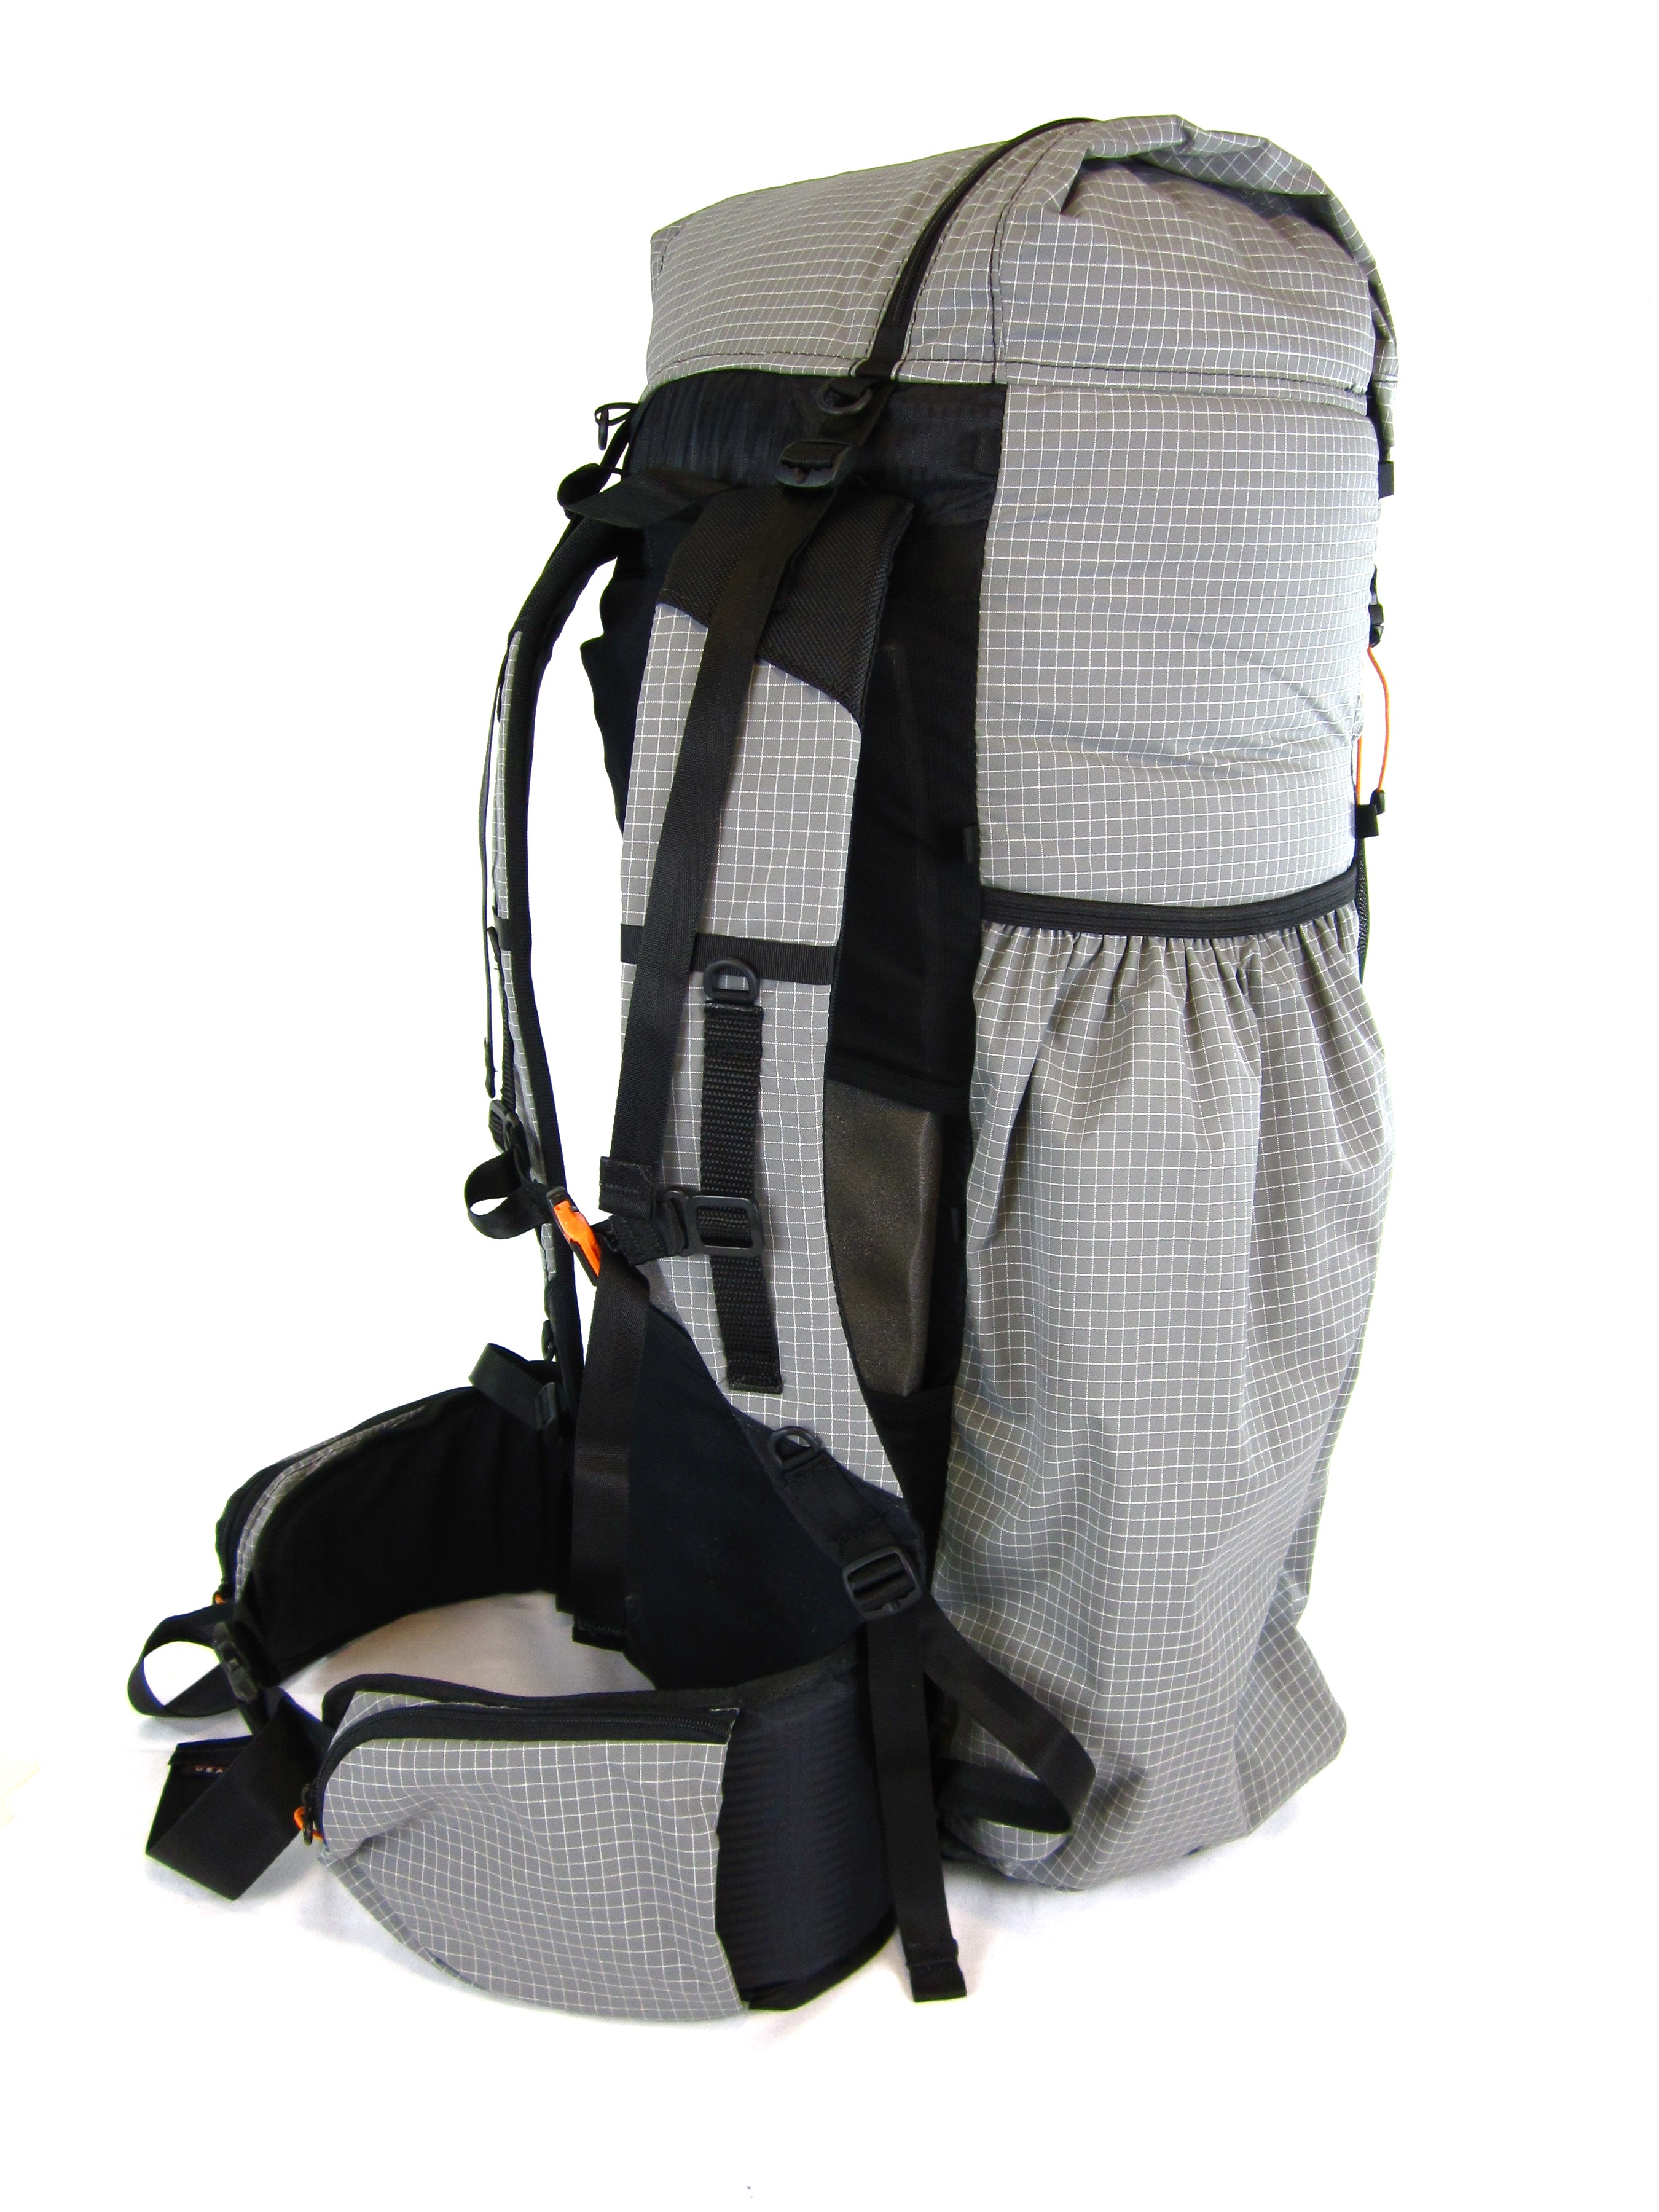 Gossamer Gear Mariposa Backpack